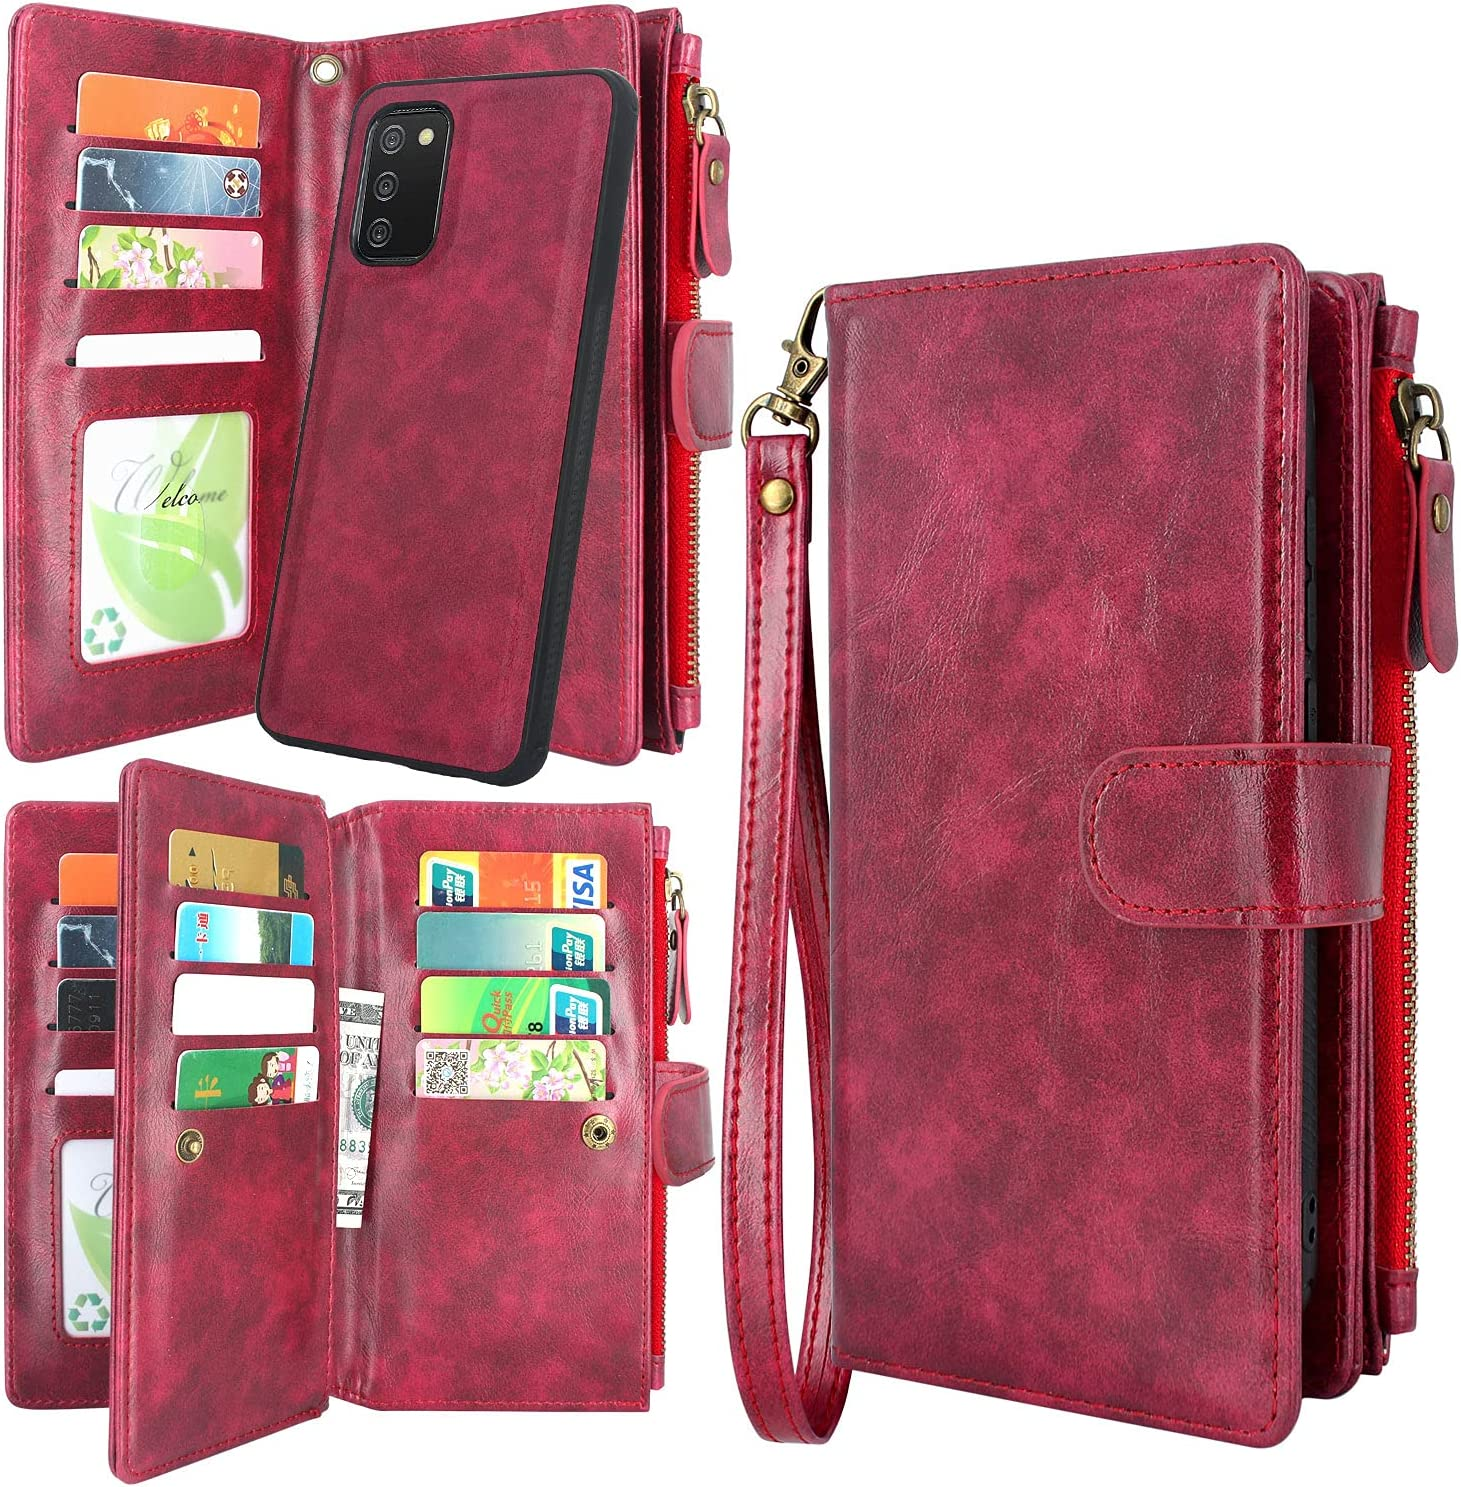 Harryshell Detachable Magnetic Zipper Wallet Leather Case Cash Pocket with 12 Card Slots Holder Wrist Strap for Samsung Galaxy A02S (SM-A025) (Wine Red)